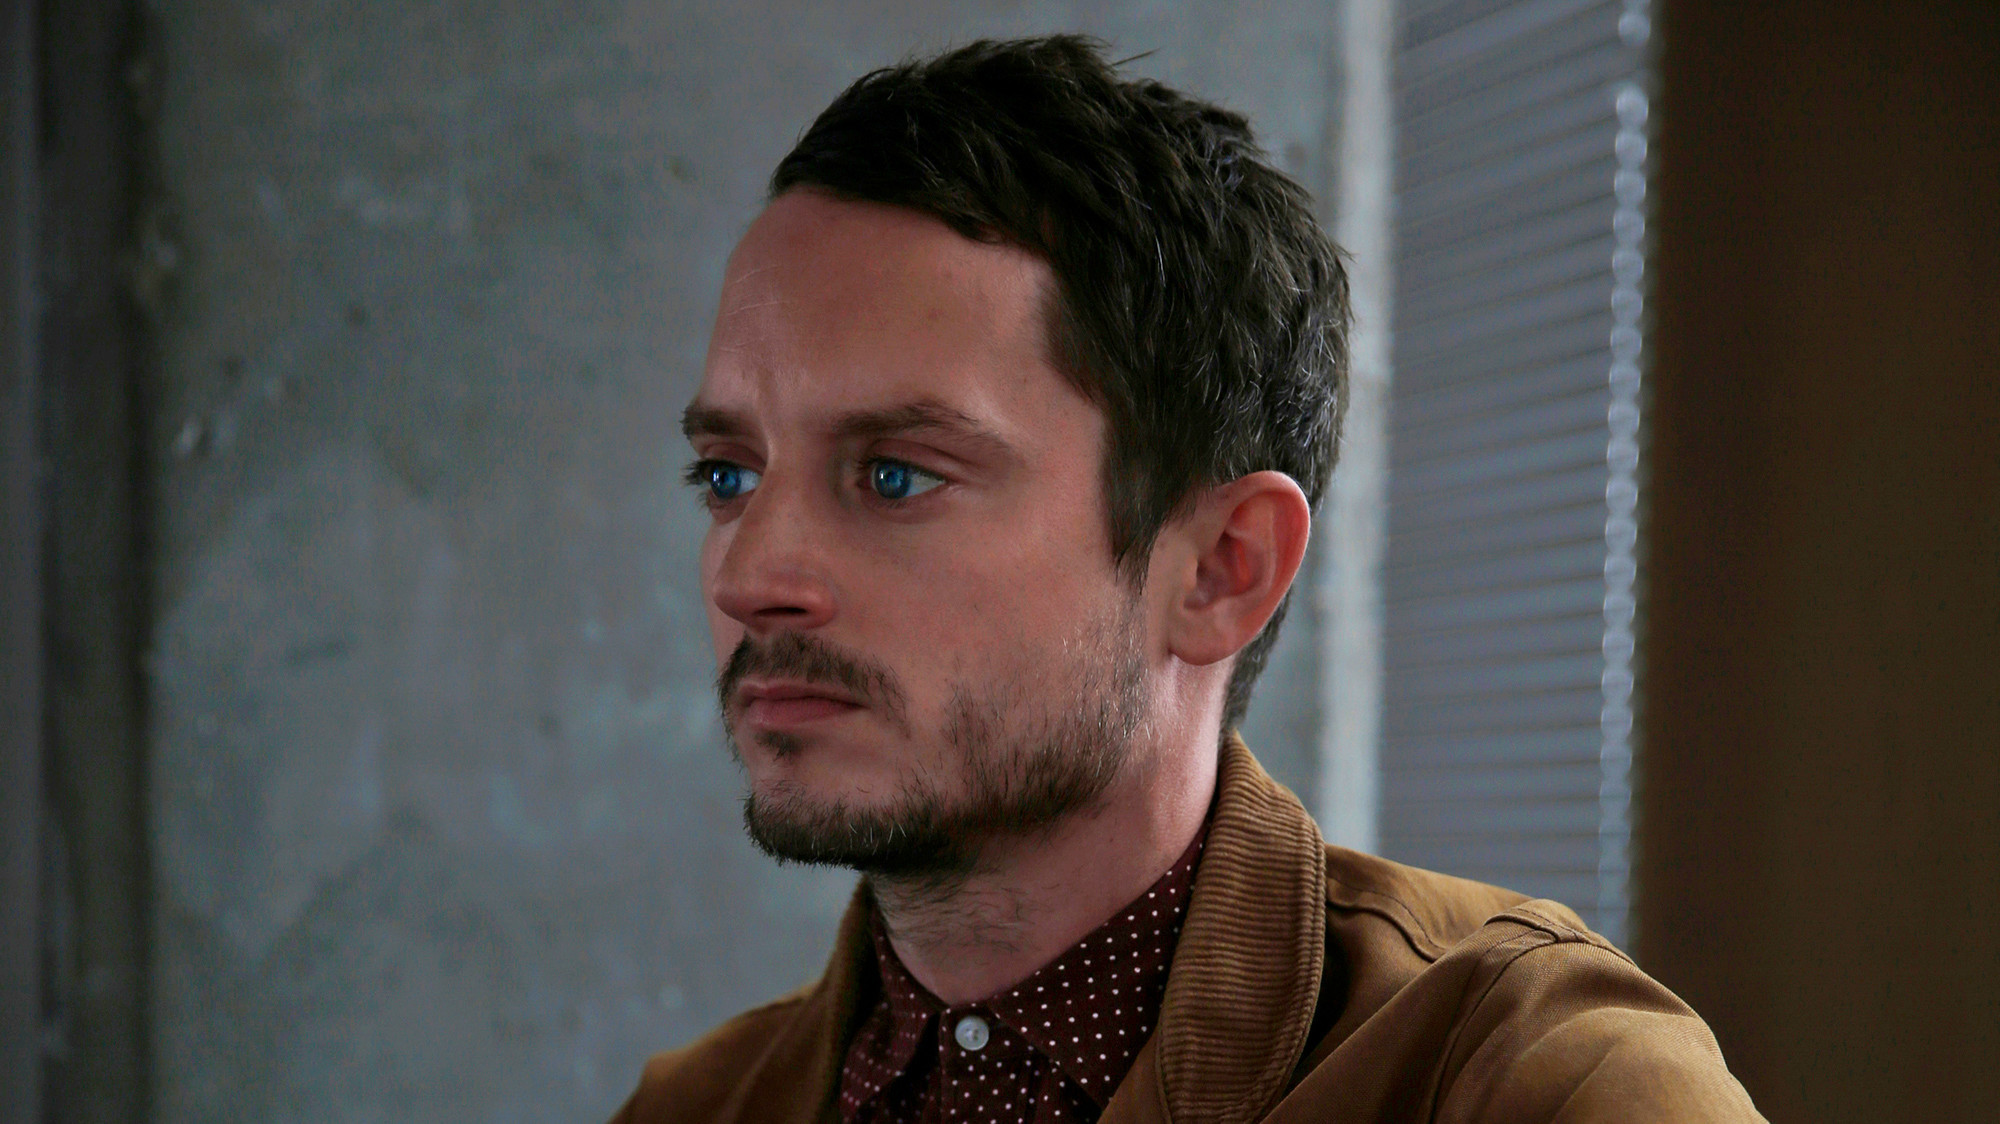 The 'un-peggable' Elijah Wood returns to TV in 'Dirk ...